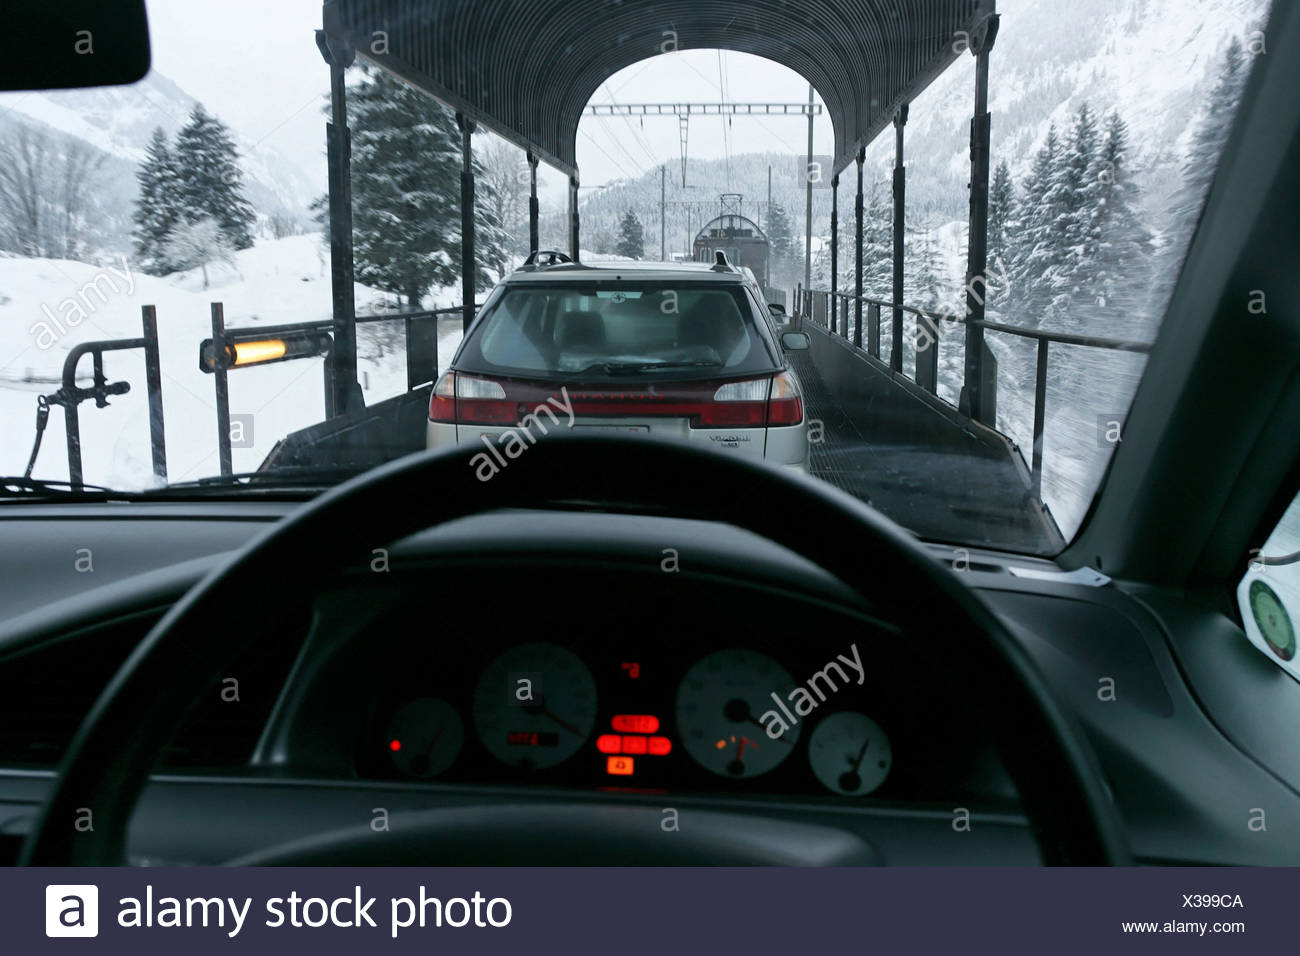 Lotschberg stock photos lotschberg stock images alamy for Car carriage